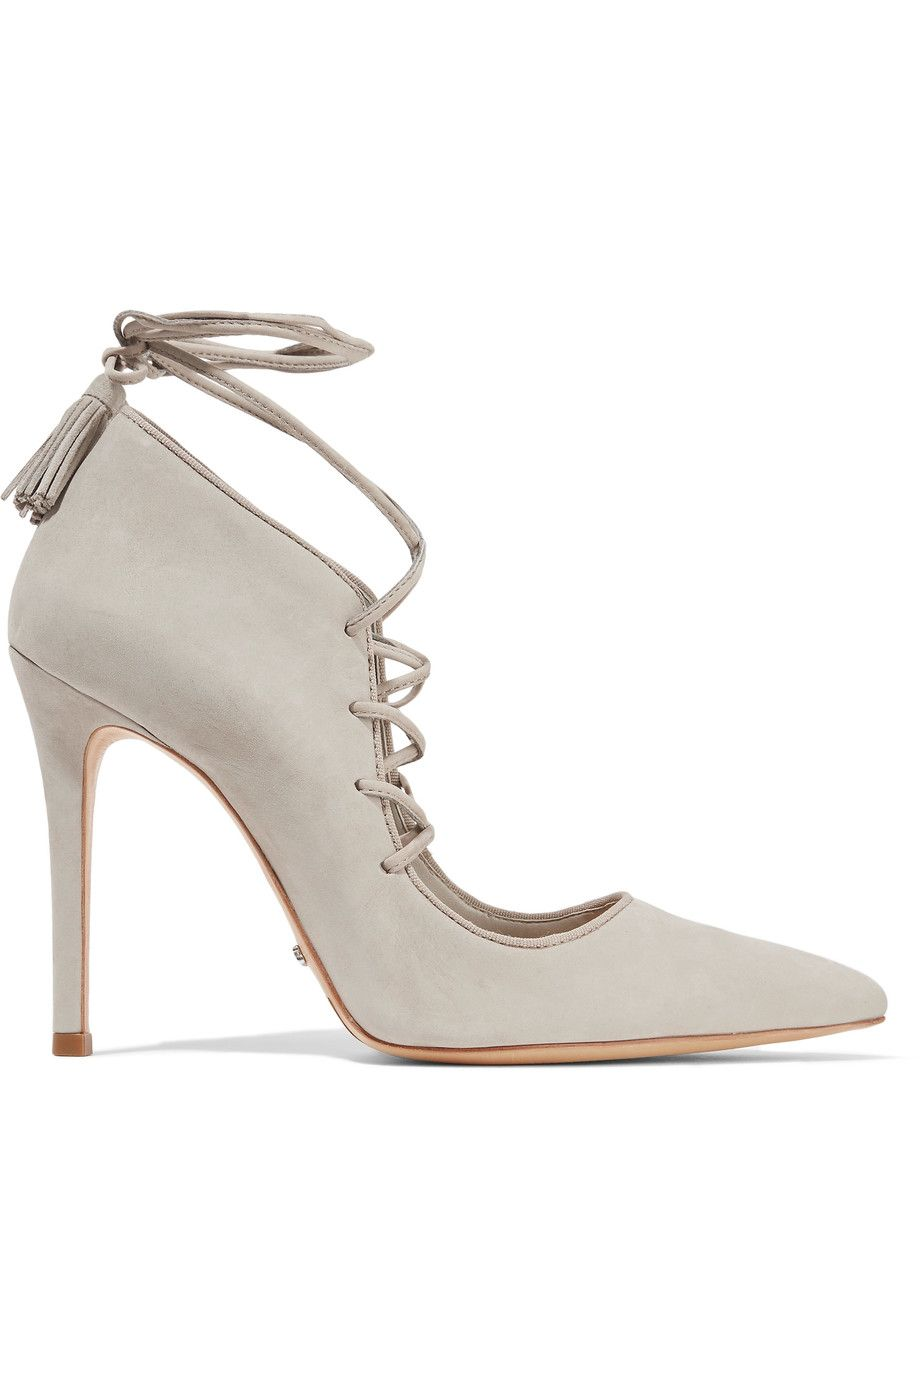 gray lace-up heels #wishlist